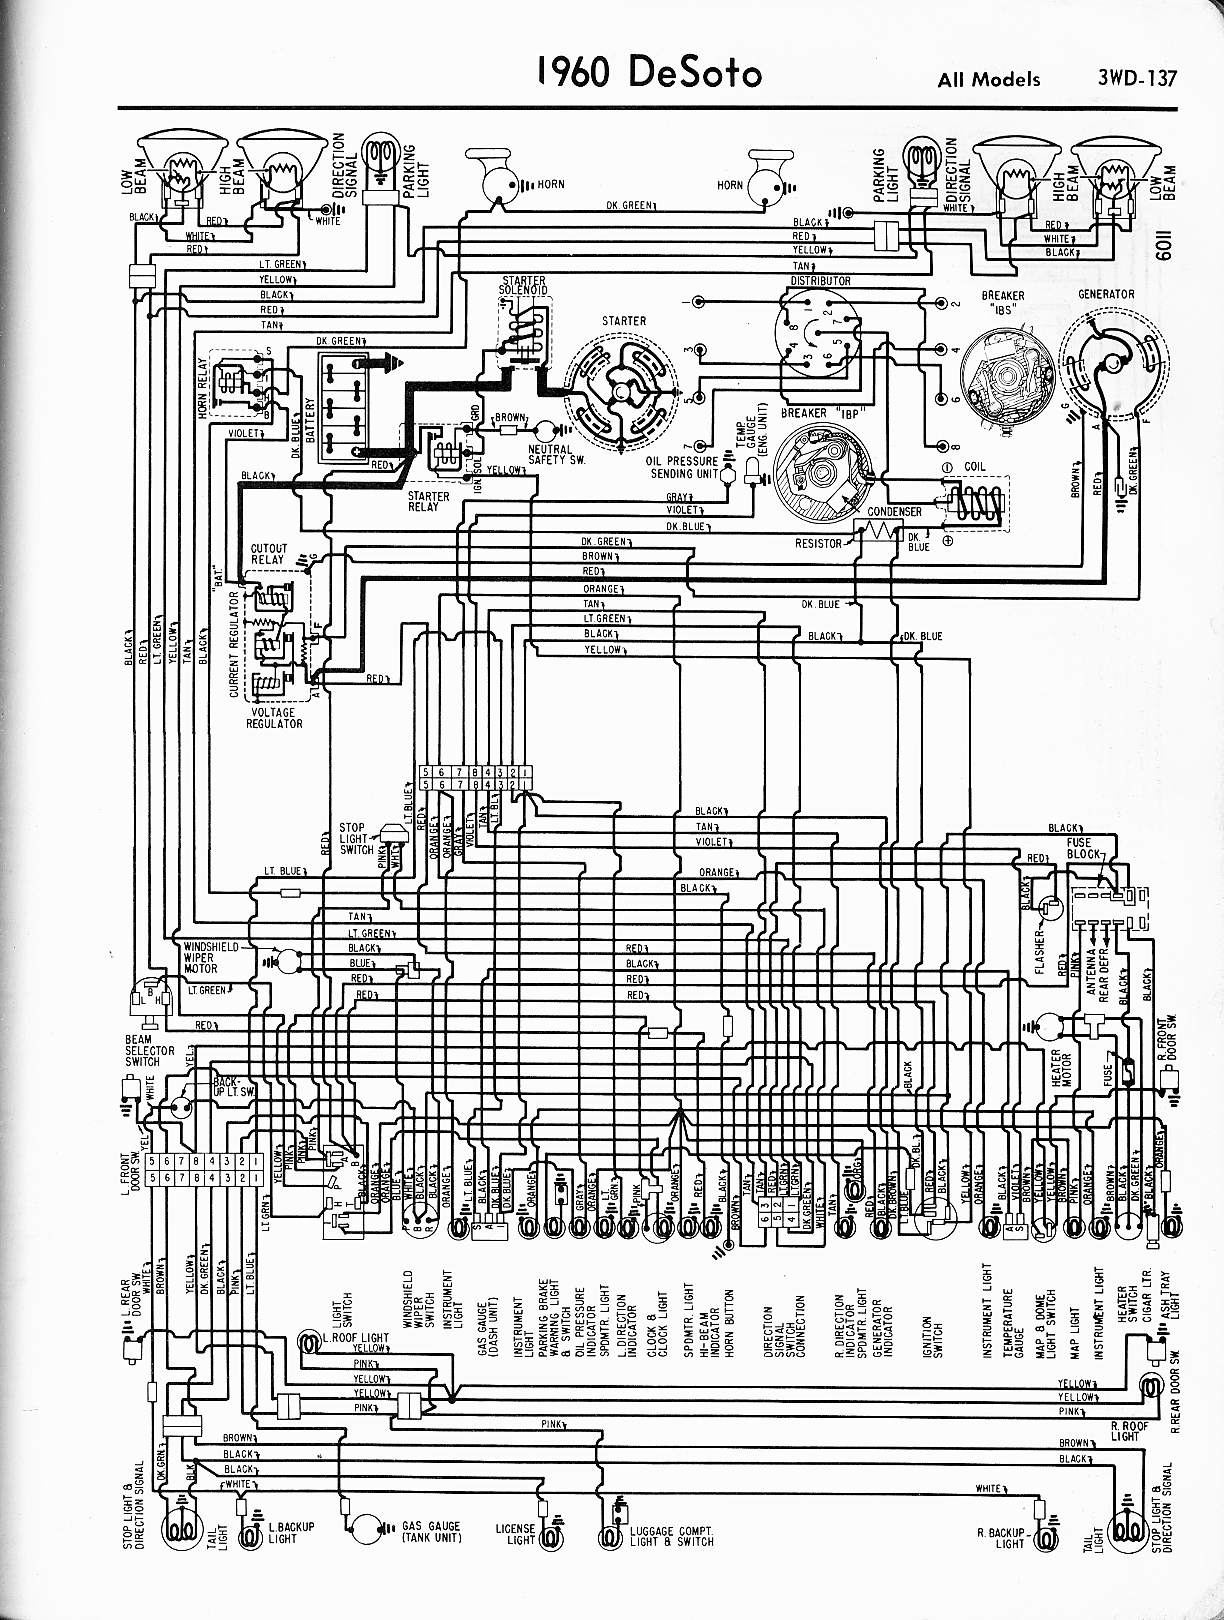 desoto wiring diagram electrical diagrams forum u2022 rh woollenkiwi co uk